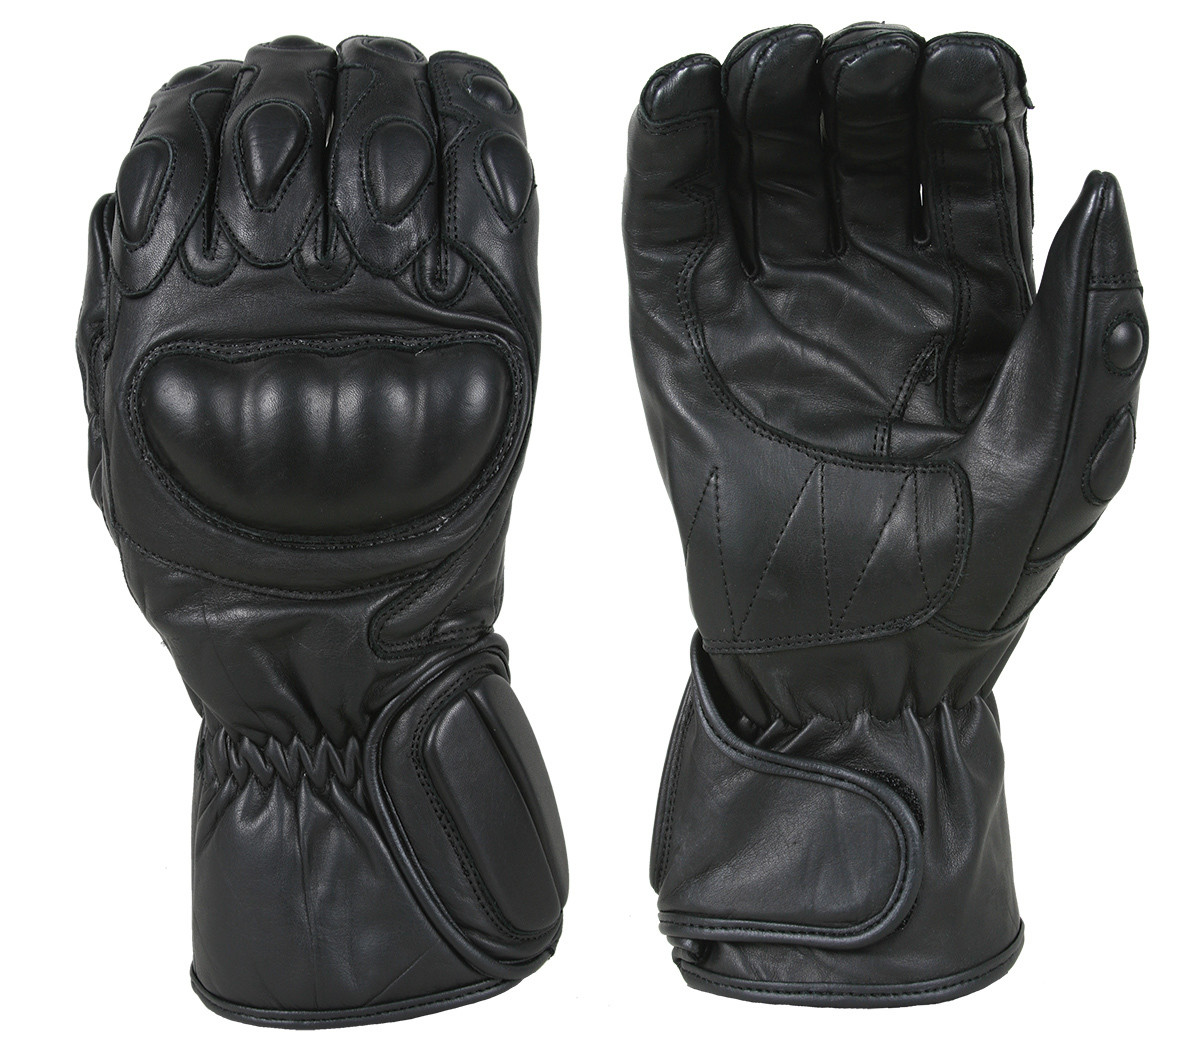 Vector 1™ - High Protection Gloves w/ Carbon-Tek™ fiber knuckles